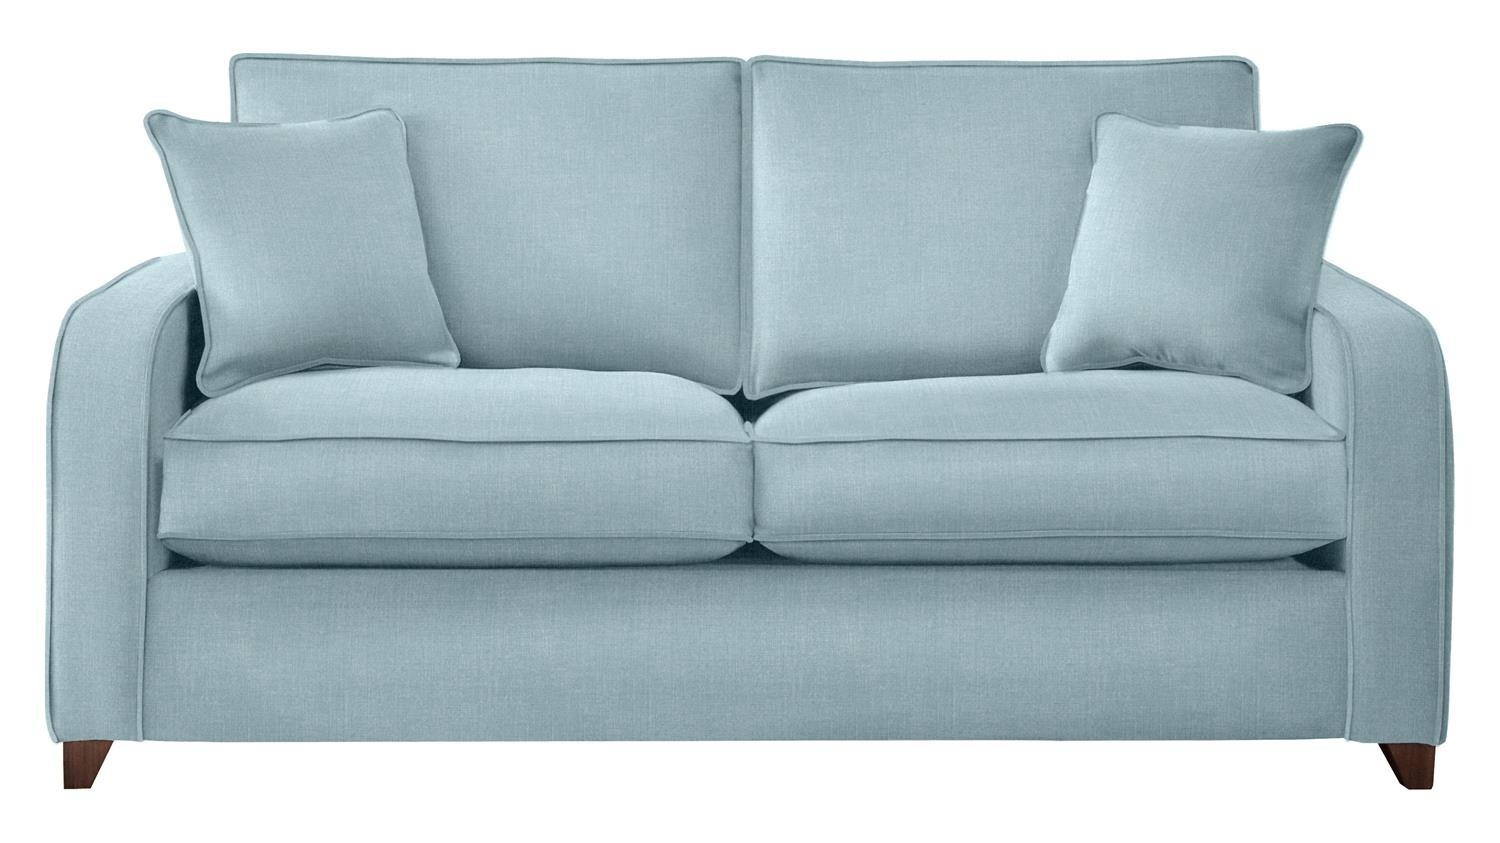 The Dunsmore 2 Seater Sofa Bed